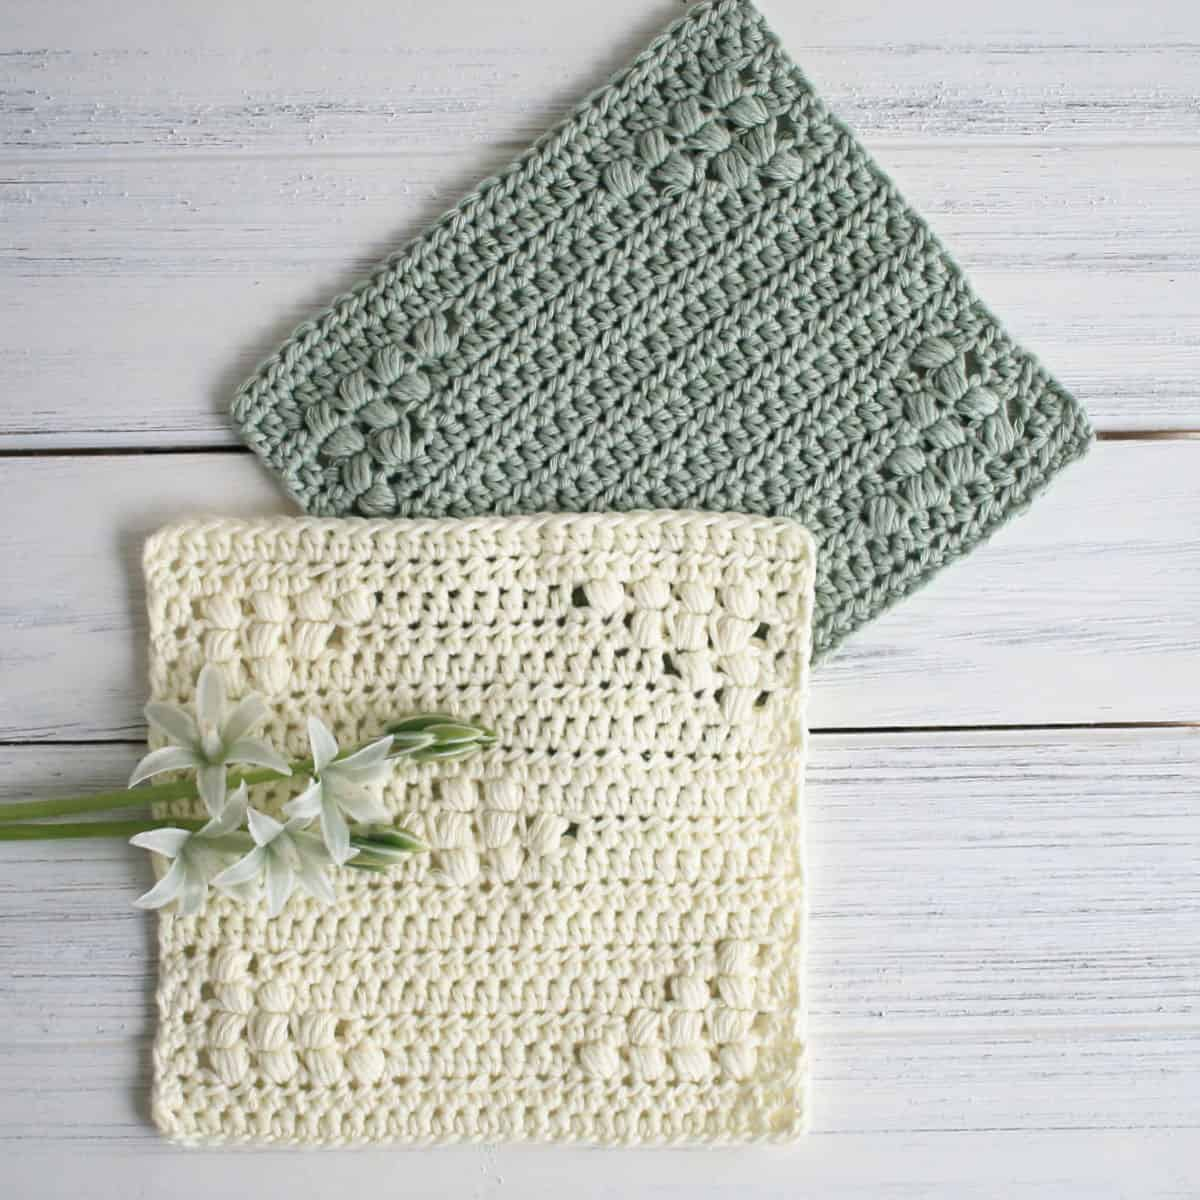 Basin Peak Dishcloth Pattern